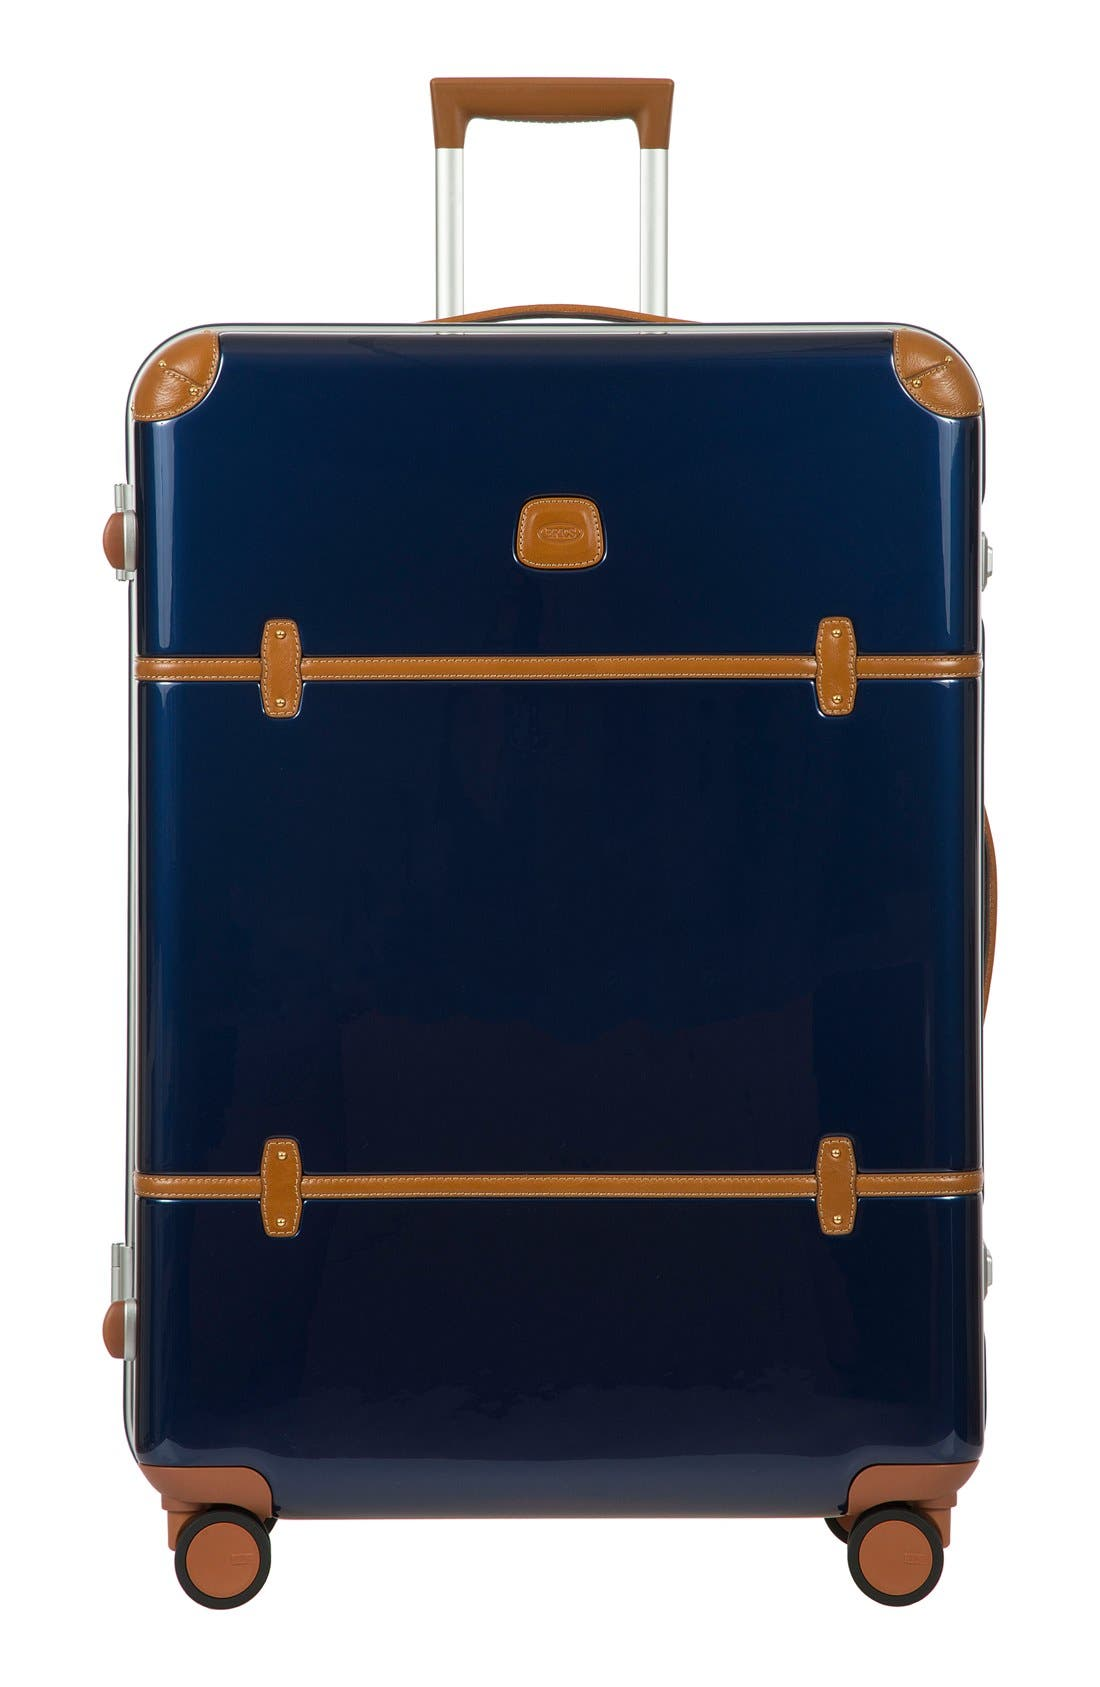 Bric's Bellagio Metallo 2.0 32 Inch Rolling Suitcase